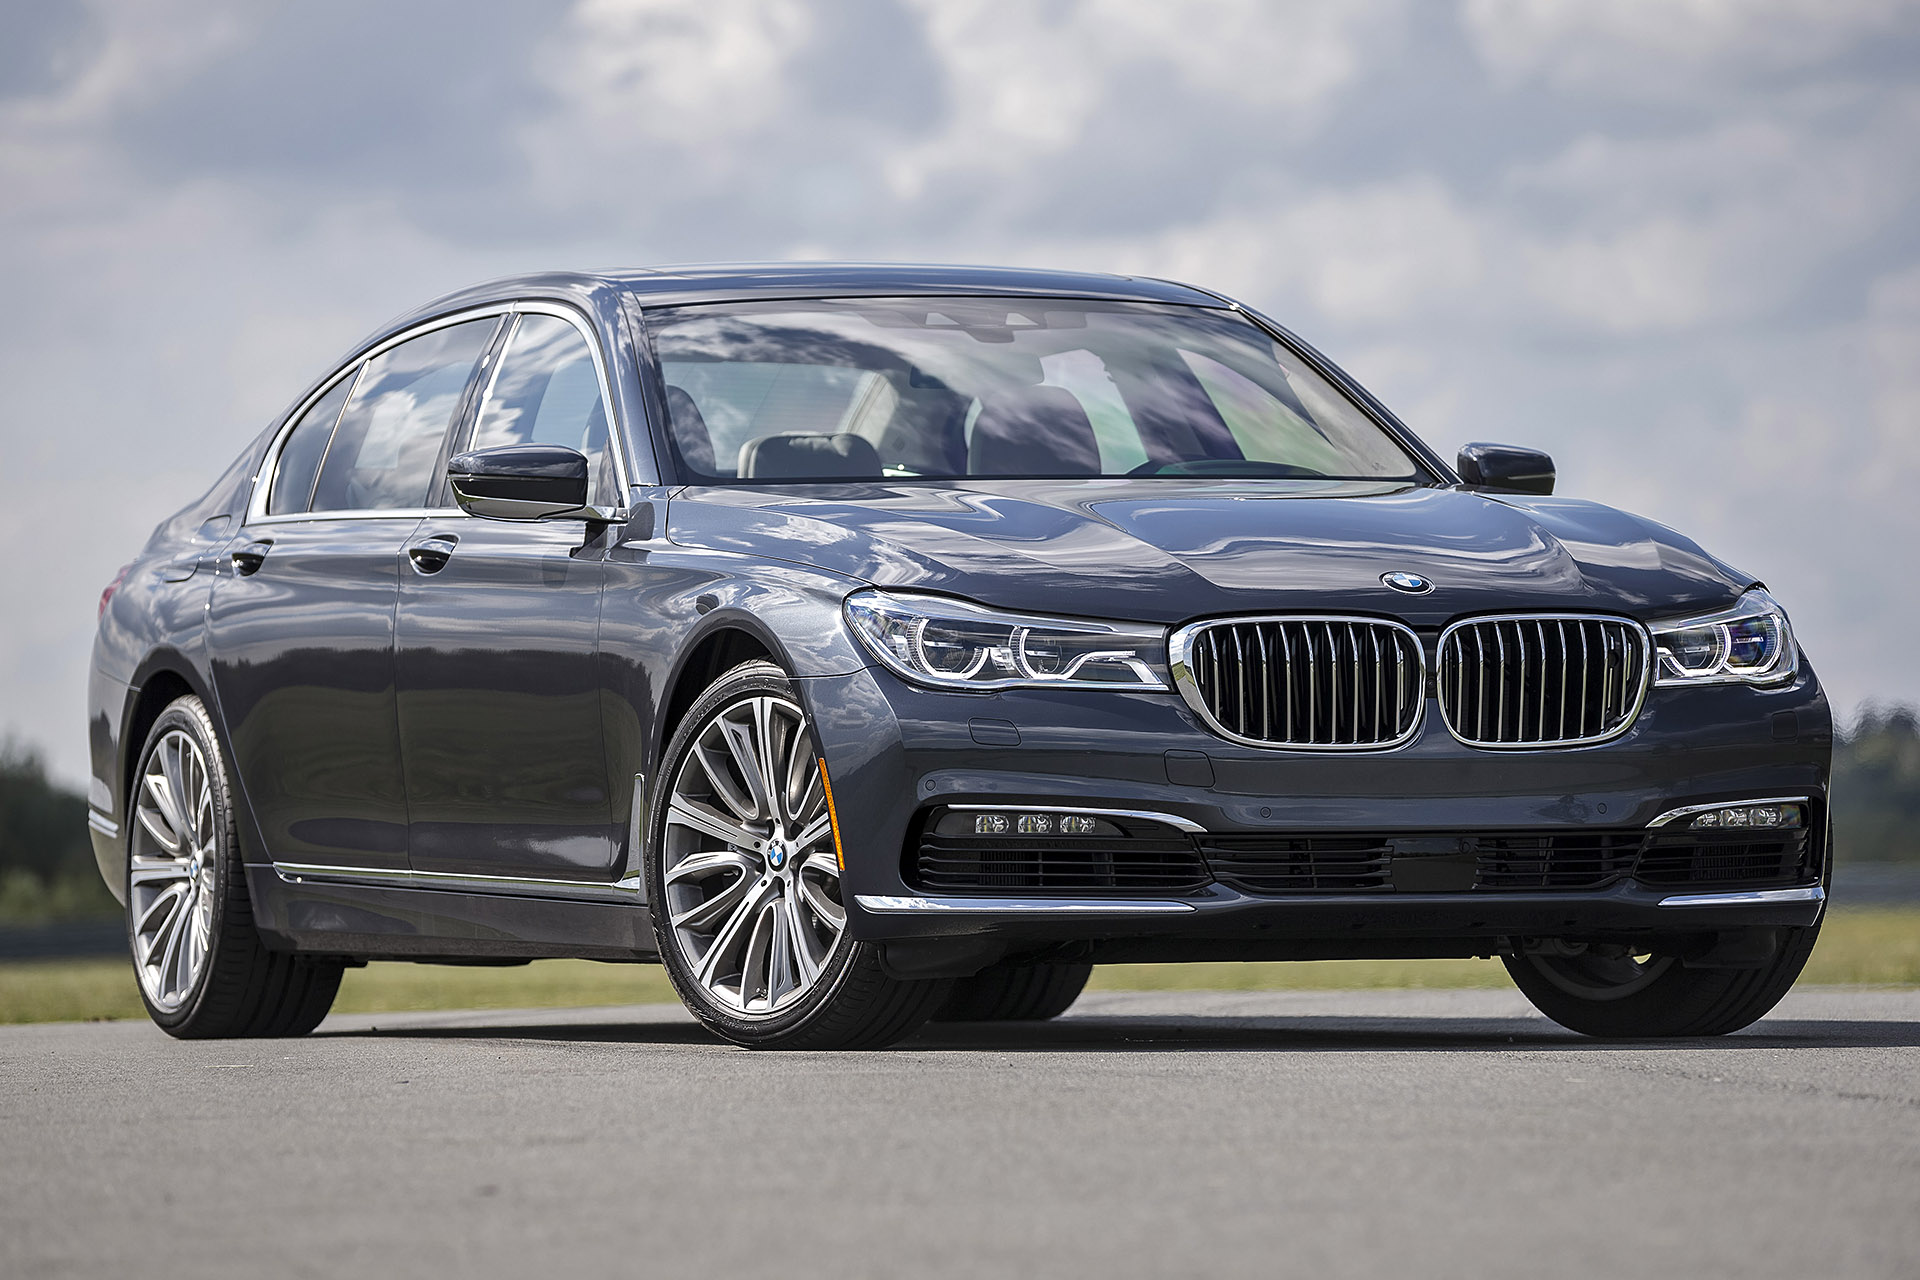 2019 BMW 7 Series photo - 5